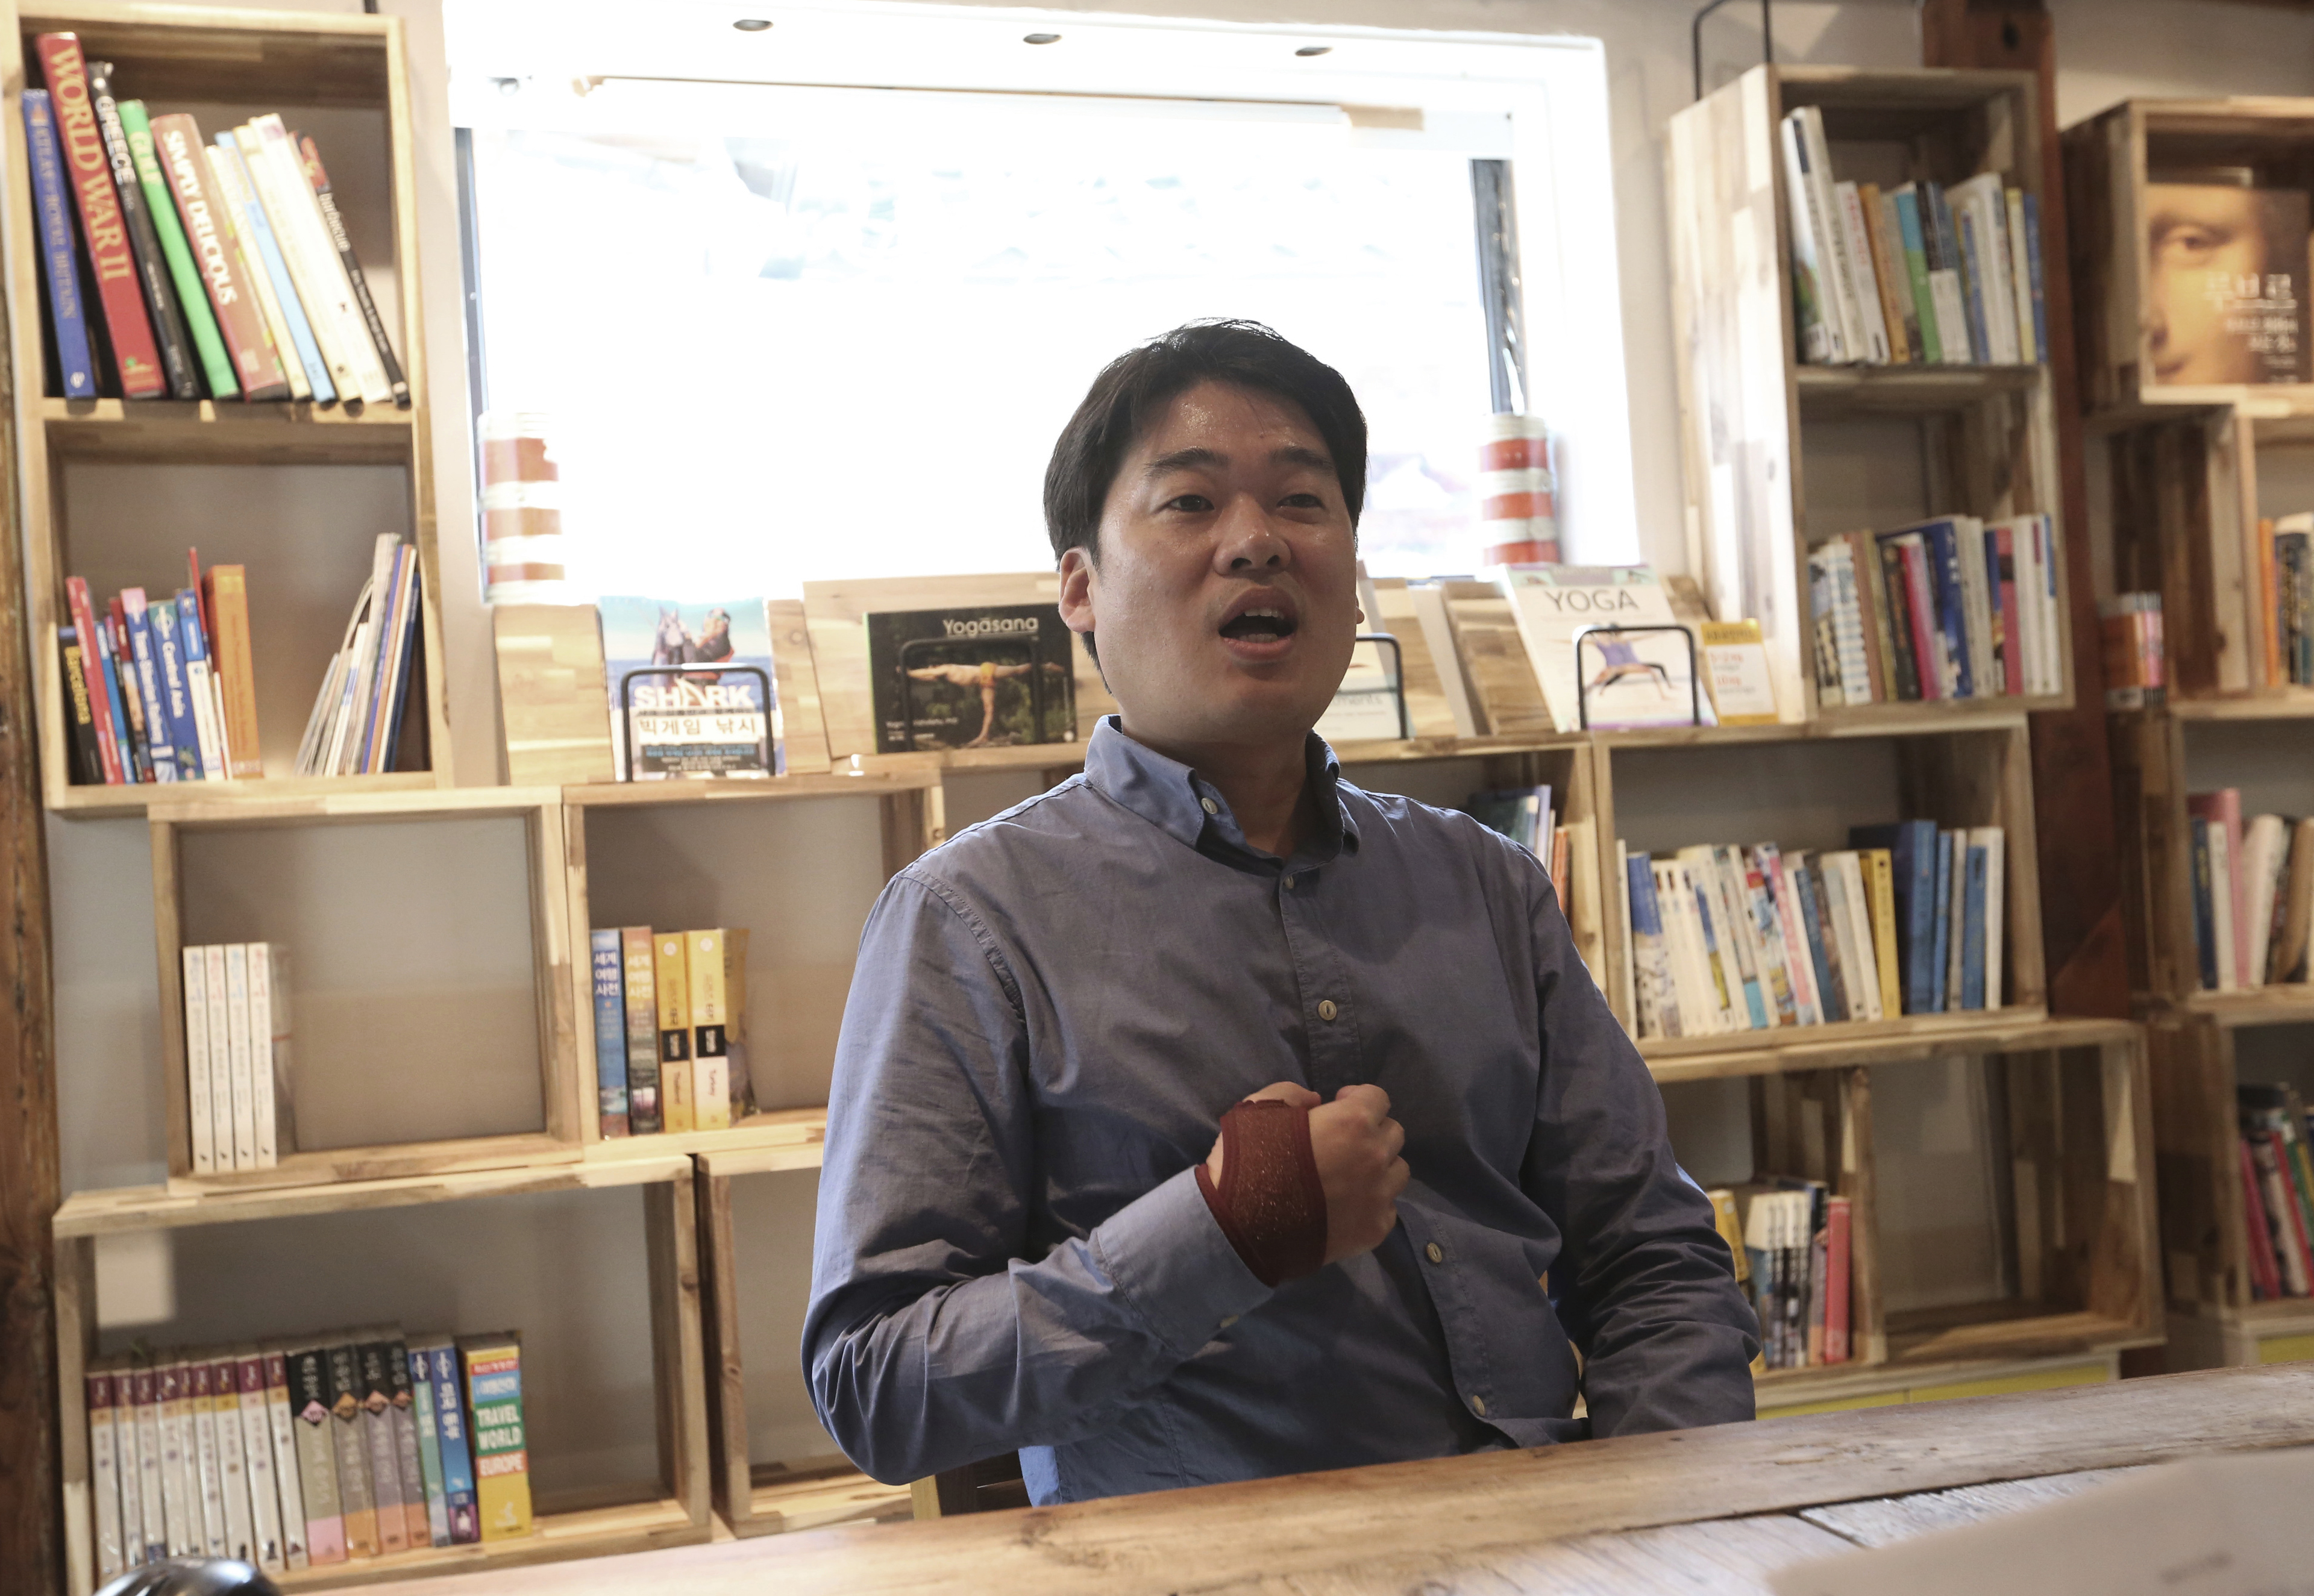 """Lim KyoungJae, 46, head of the Seoul-based Miko Travel agency, speaks at his office in Seoul, South Korea, April 3, 2019. """"If we use international age, things could get more complicated because it's a society that cares so much about which year ..."""